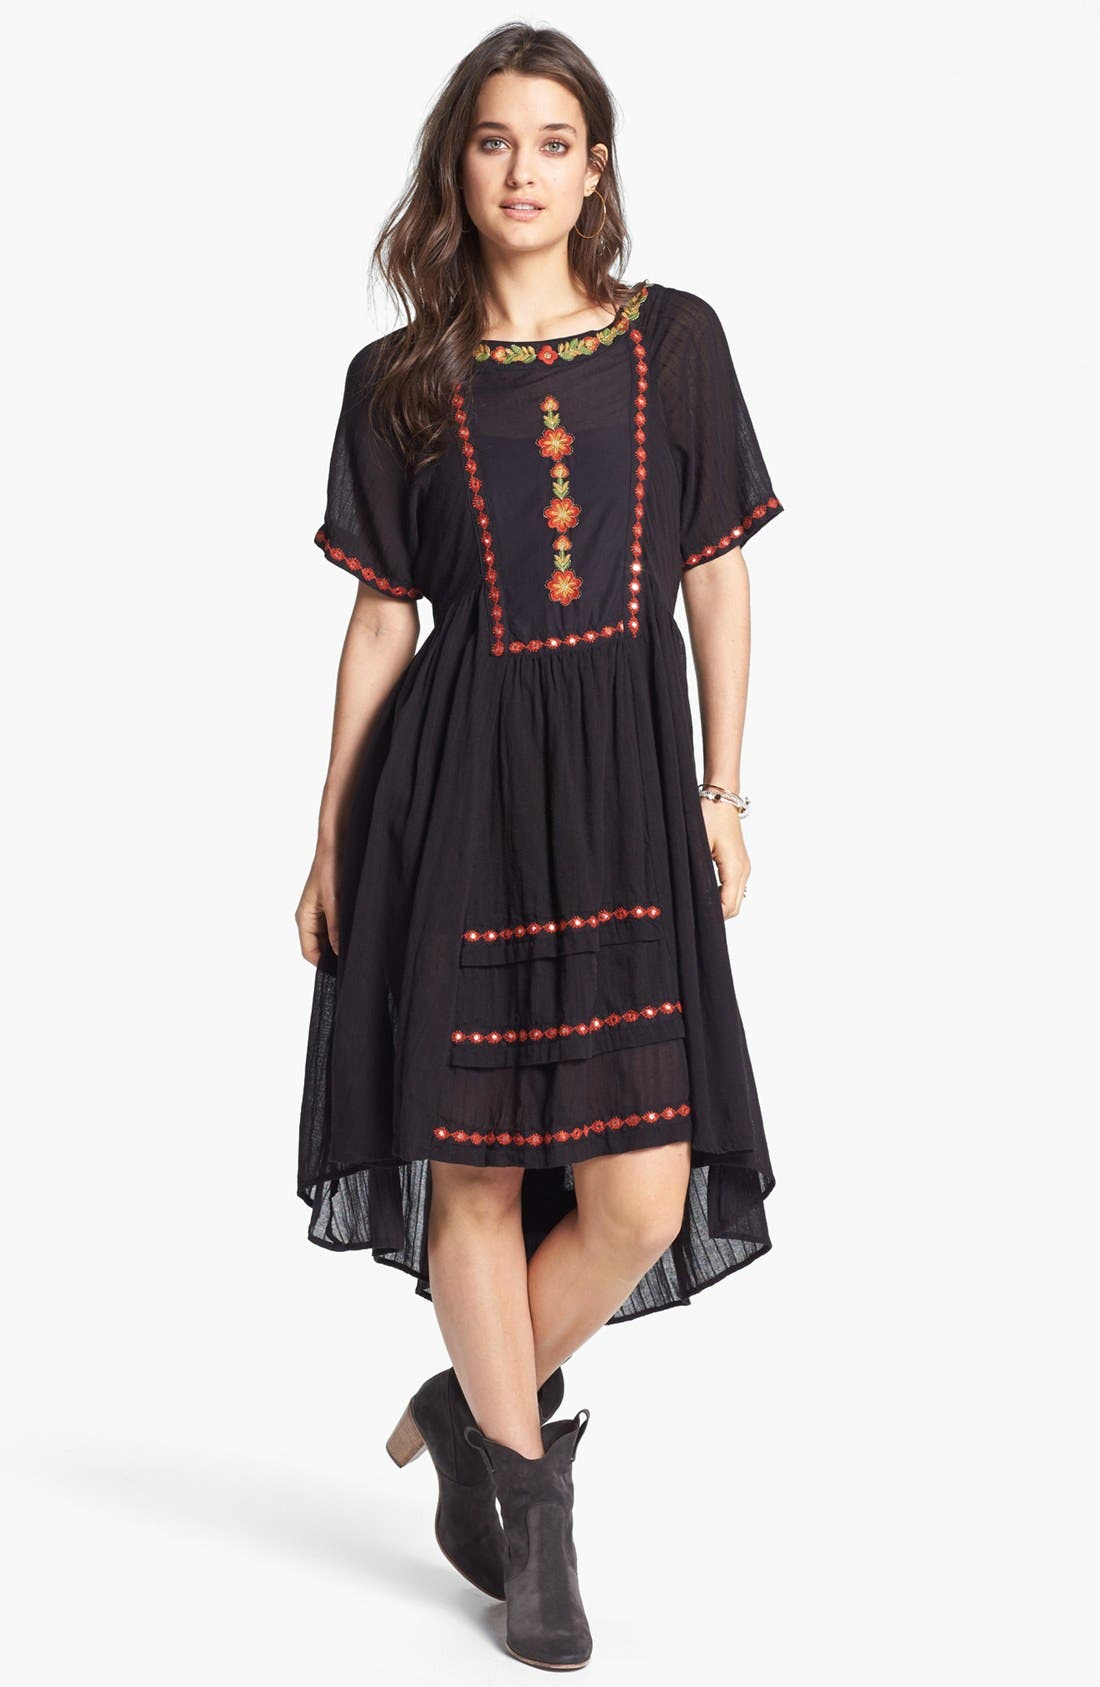 Alternate Image 1 Selected - Free People 'Folk' Embroidered Cotton High/Low Dress